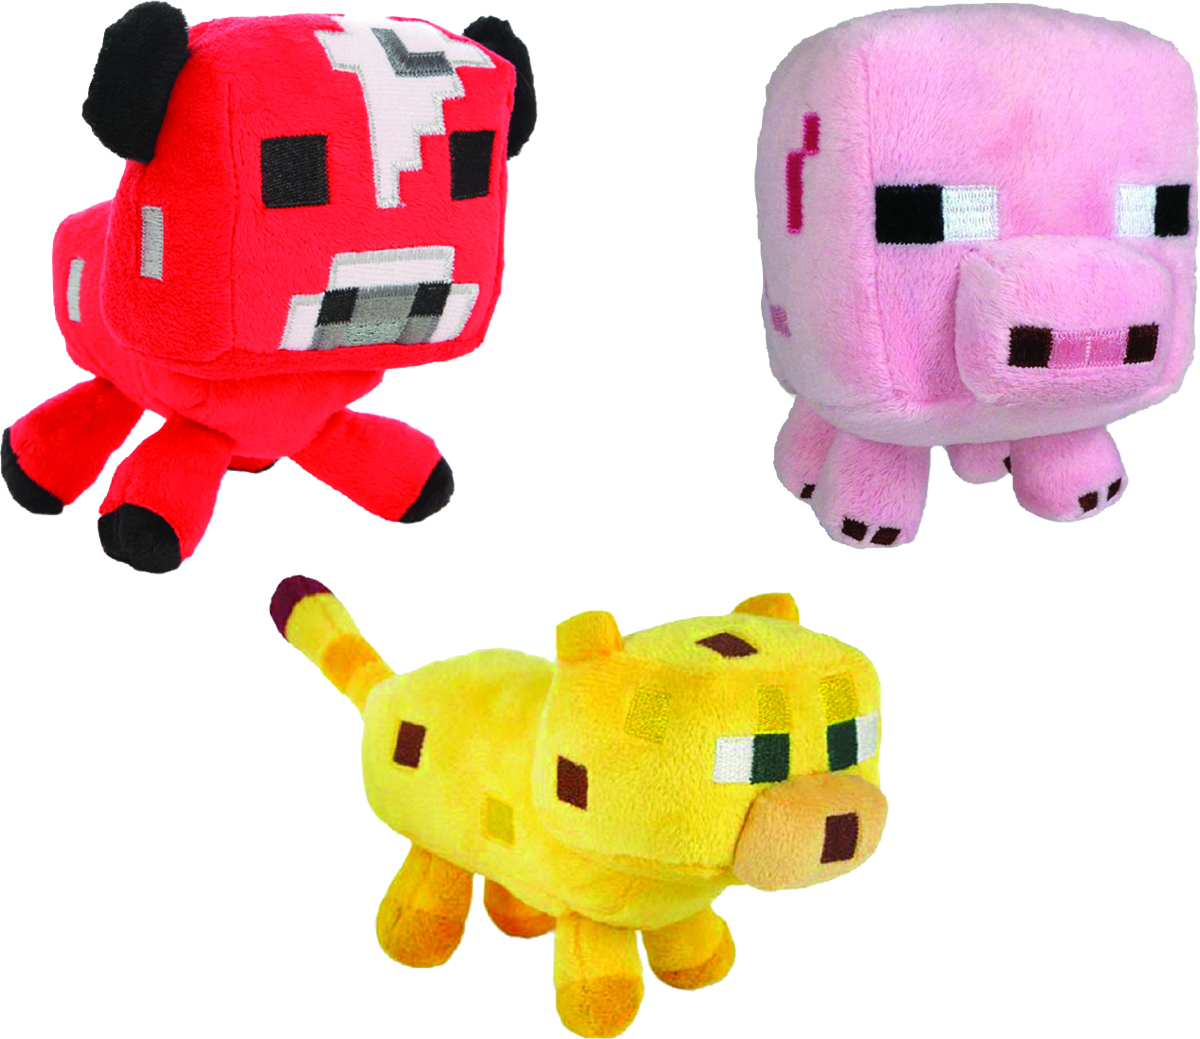 MINECRAFT ANIMAL 7IN PLUSH ASST #2